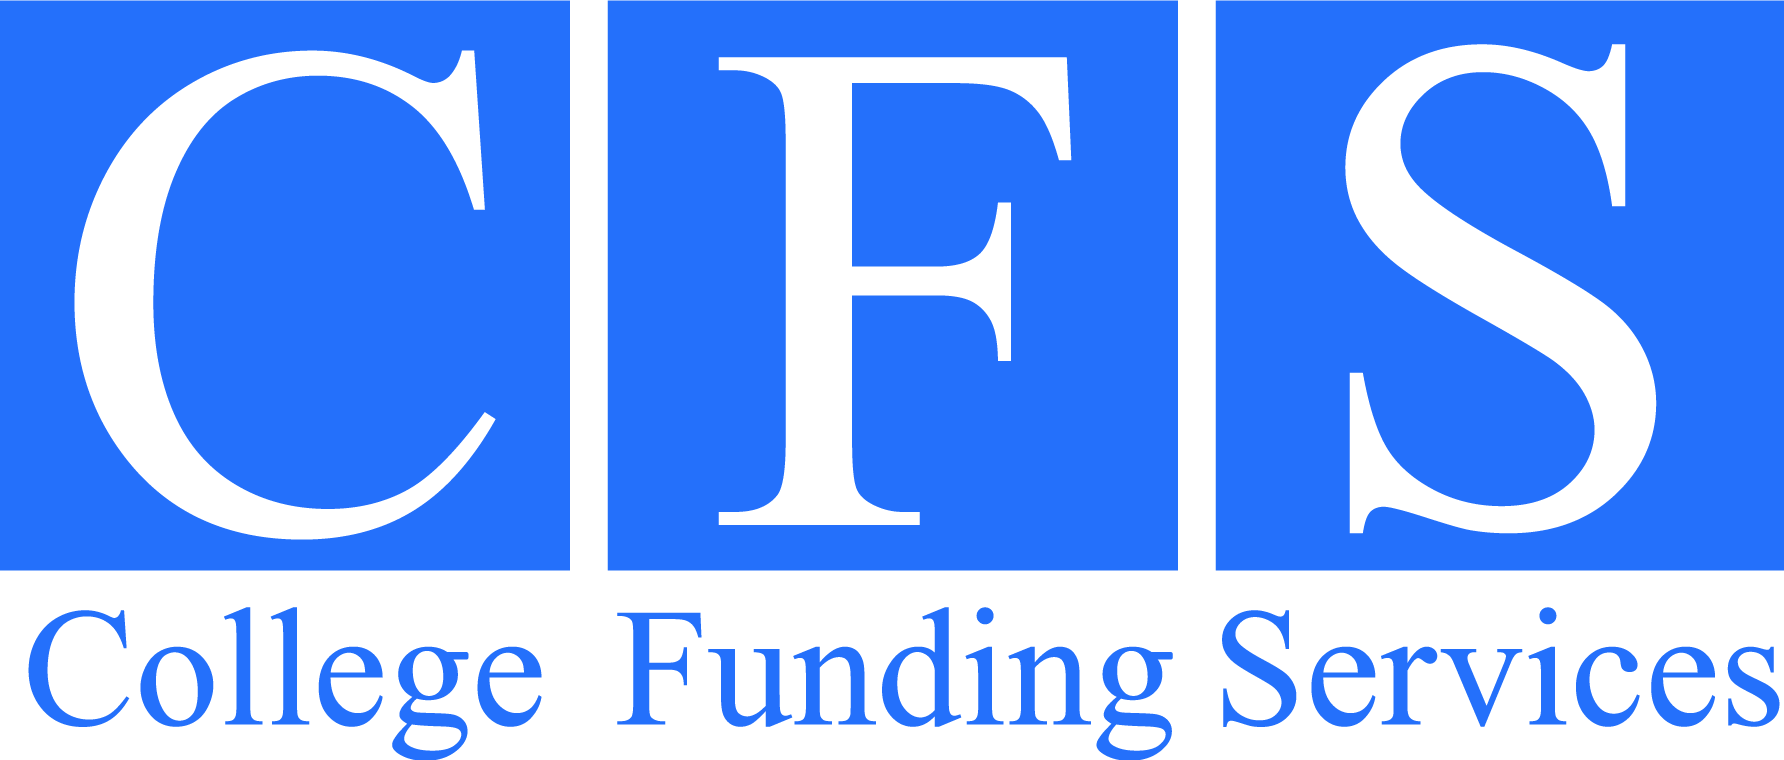 College Funding Services